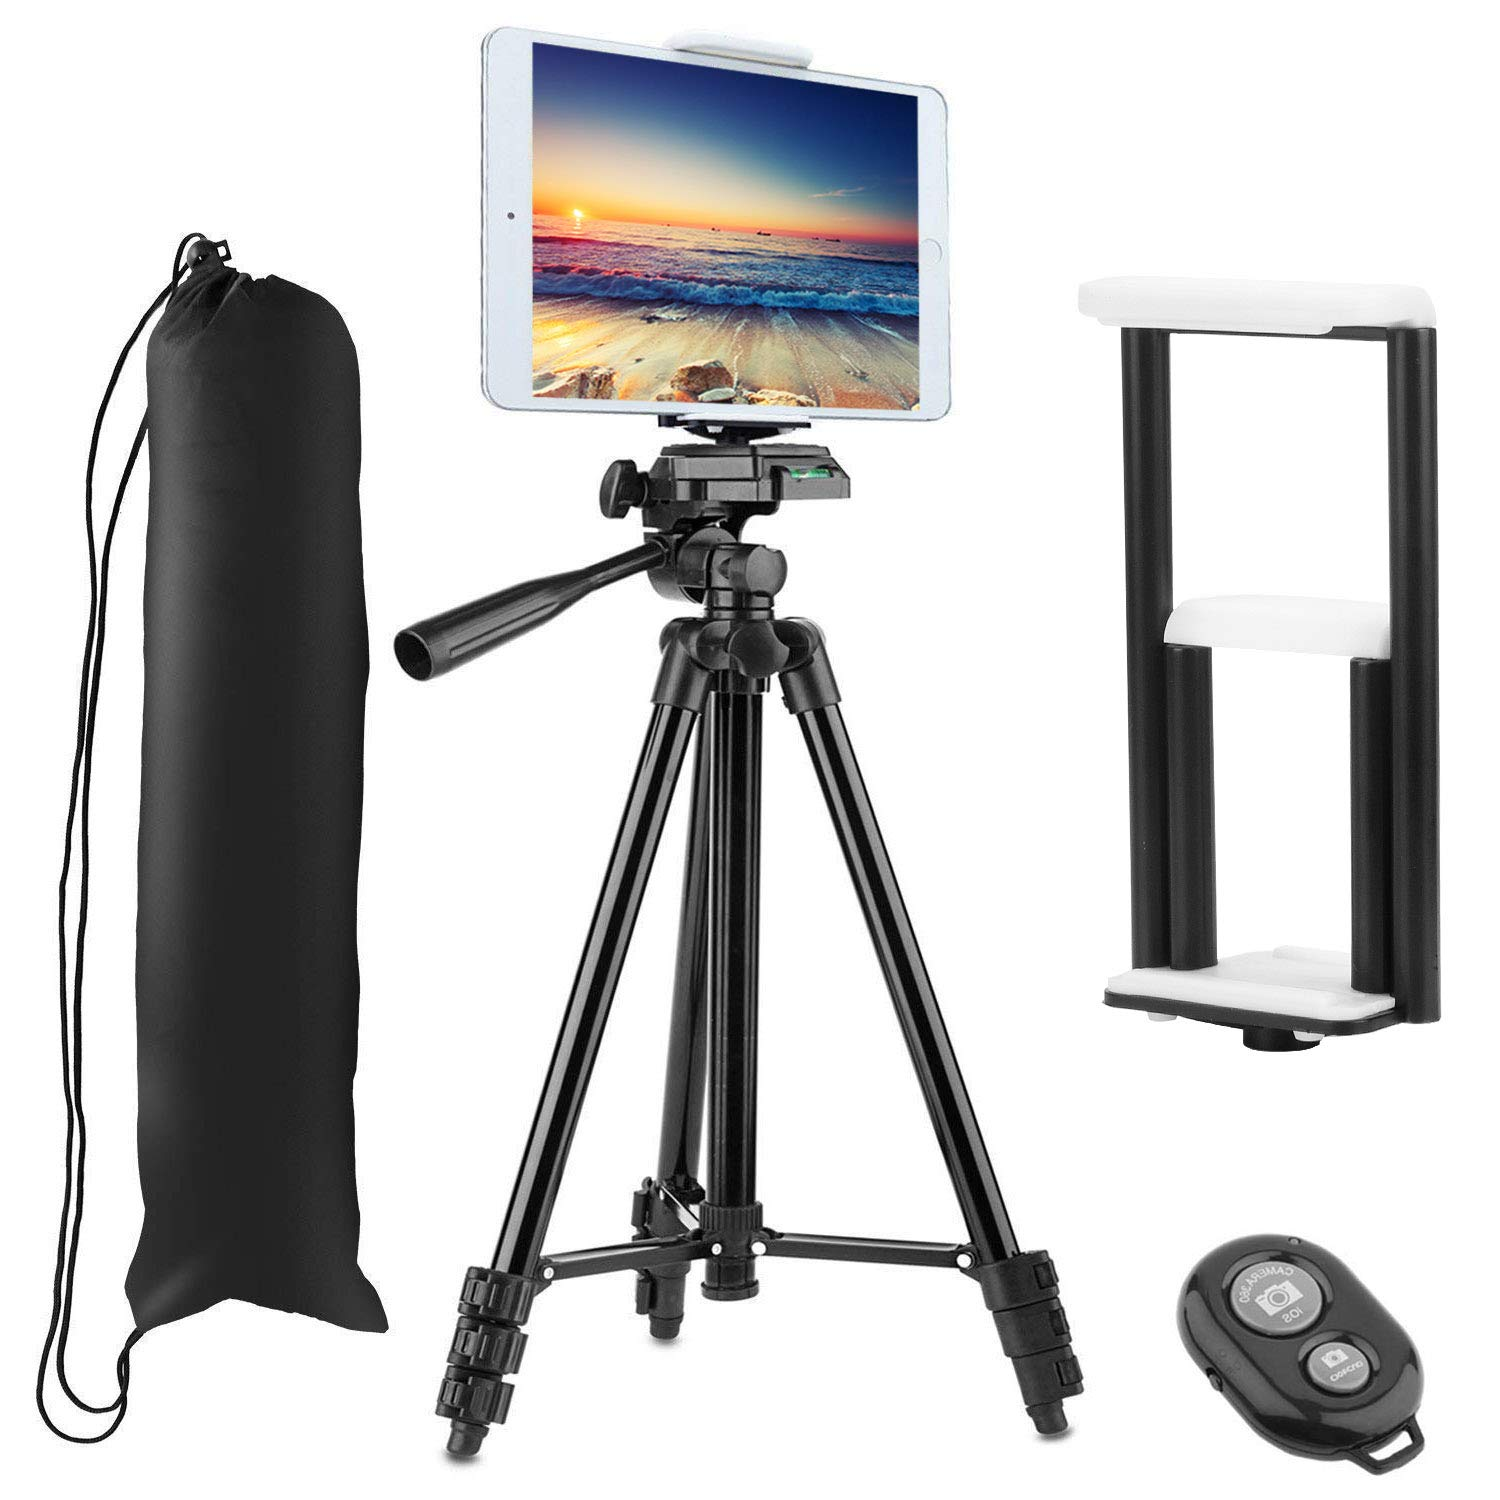 PEYOU Compatible for iPad iPhone Tripod, 50'' Lightweight Aluminum Phone Camera Tablet Tripod + Wireless Remote + Universal 2 in 1 Mount Holder for Smartphone (Width 2.2-3.3''),Tablet (Width 4.3-7.3'') by Peyou